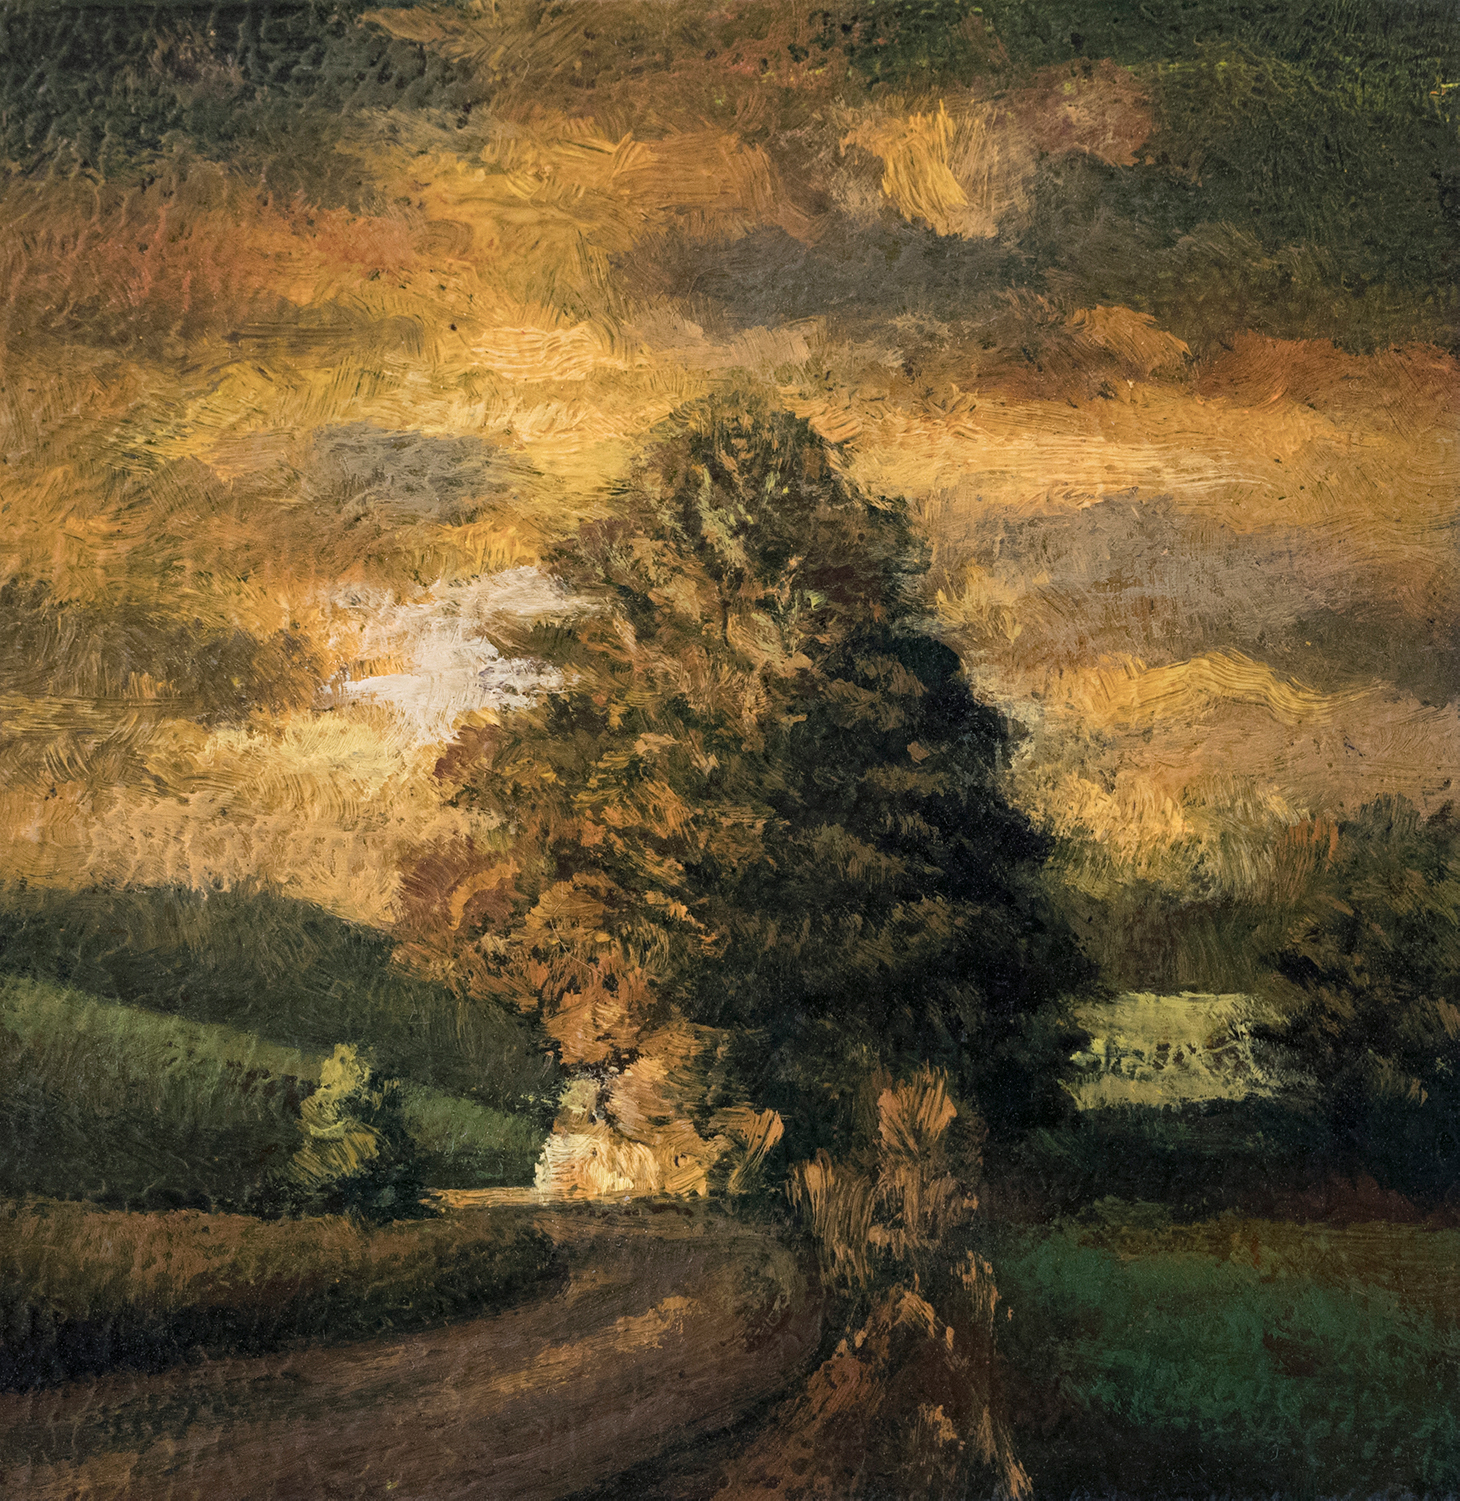 Twilight Road 3½x3½by M Francis McCarthy, Oil on Wood Panel